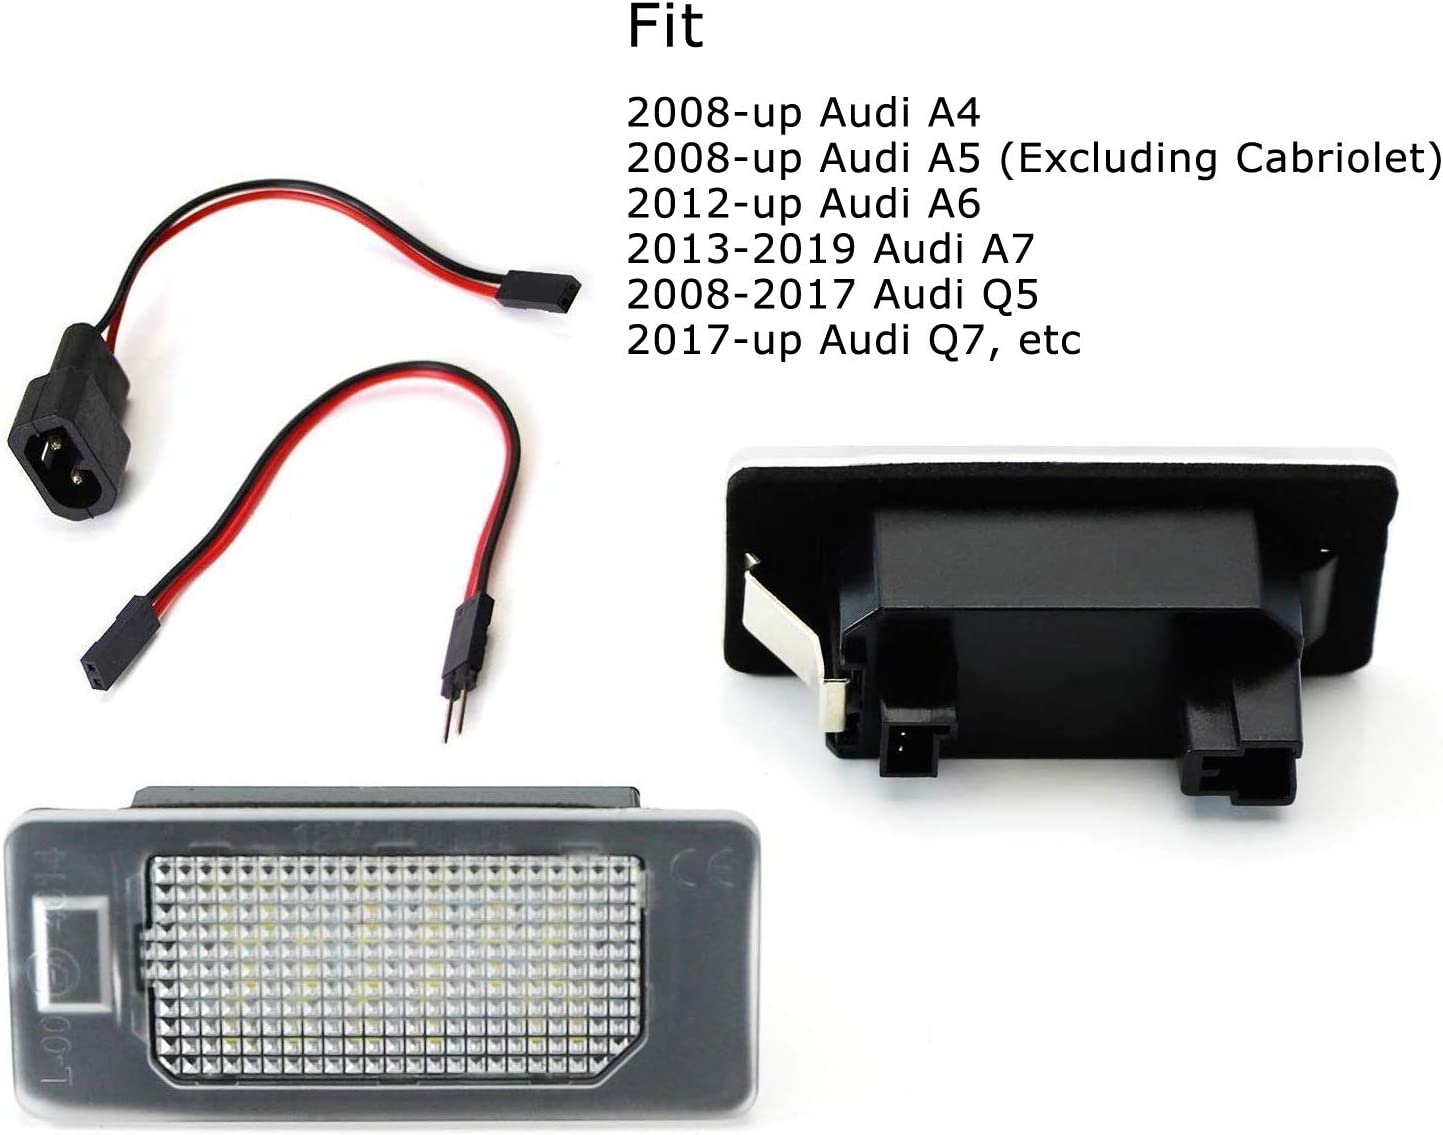 iJDMTOY OEM-Fit 3W Full LED License Plate Light Kit Compatible With A4 A5 A6 A7 S4 S5 S6 S7 RS4 RS5 RS7 Q5 Q7 Powered by 24-SMD Xenon White LED /& CAN-bus Error Free